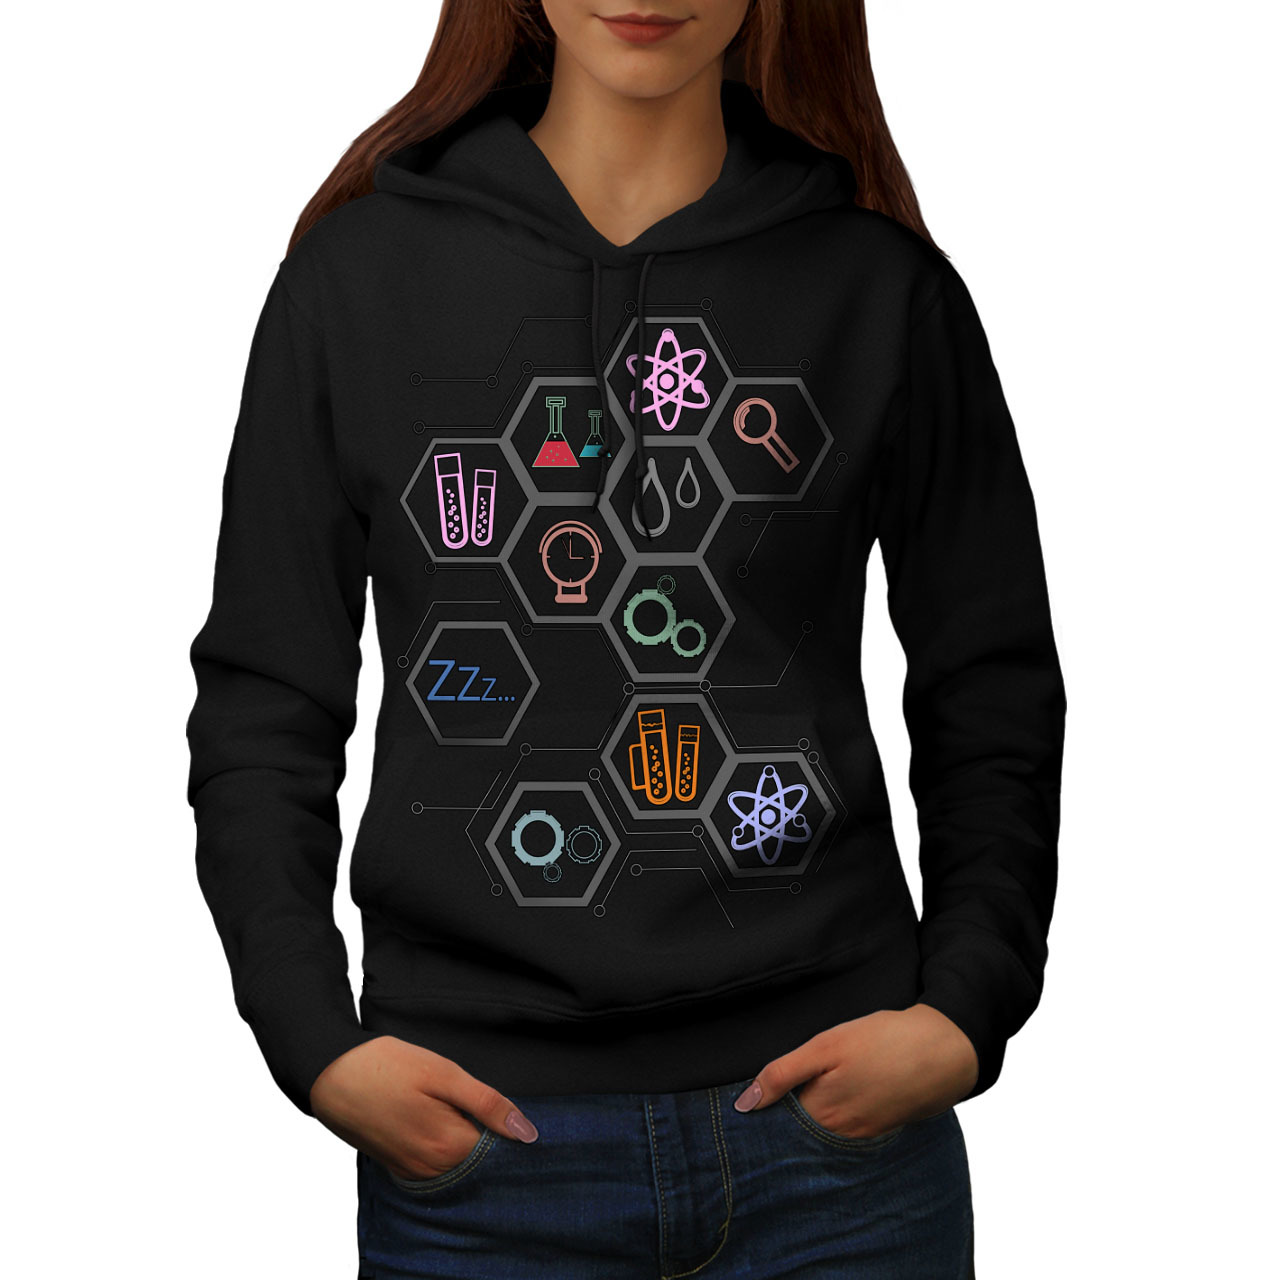 Primary image for Science Love Print Sweatshirt Hoody Geek Madness Women Hoodie